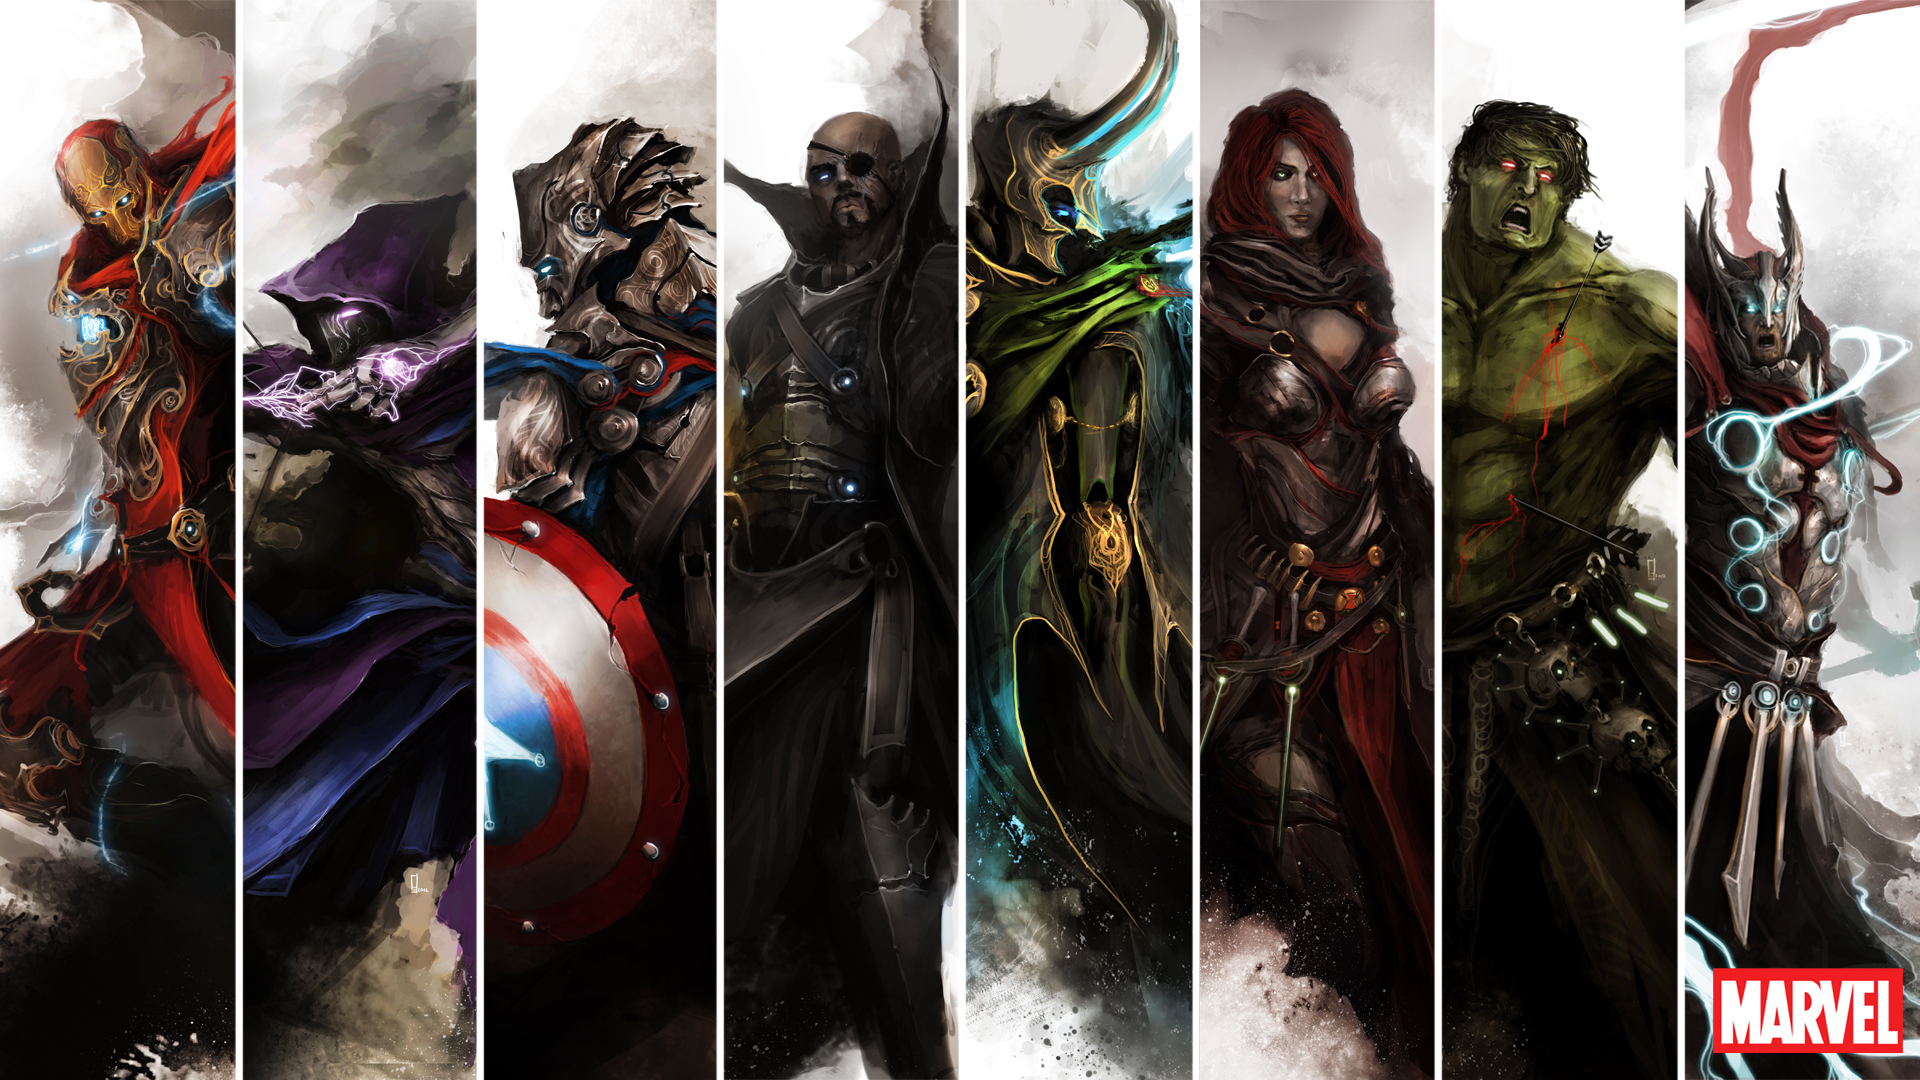 medieval Avengers (thedurrrrian)